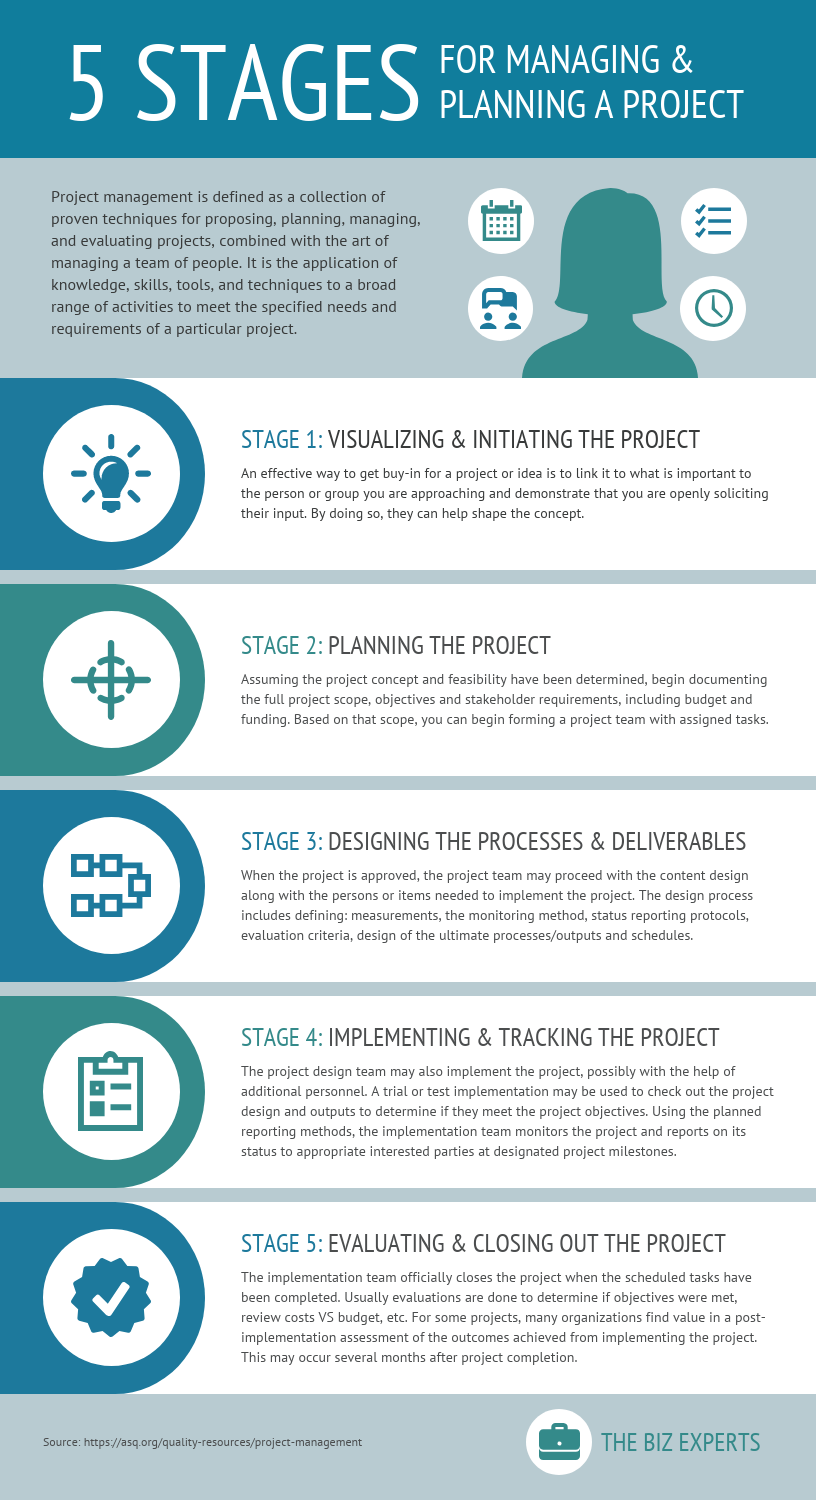 5 Stages For Managing A Project Process Infographic